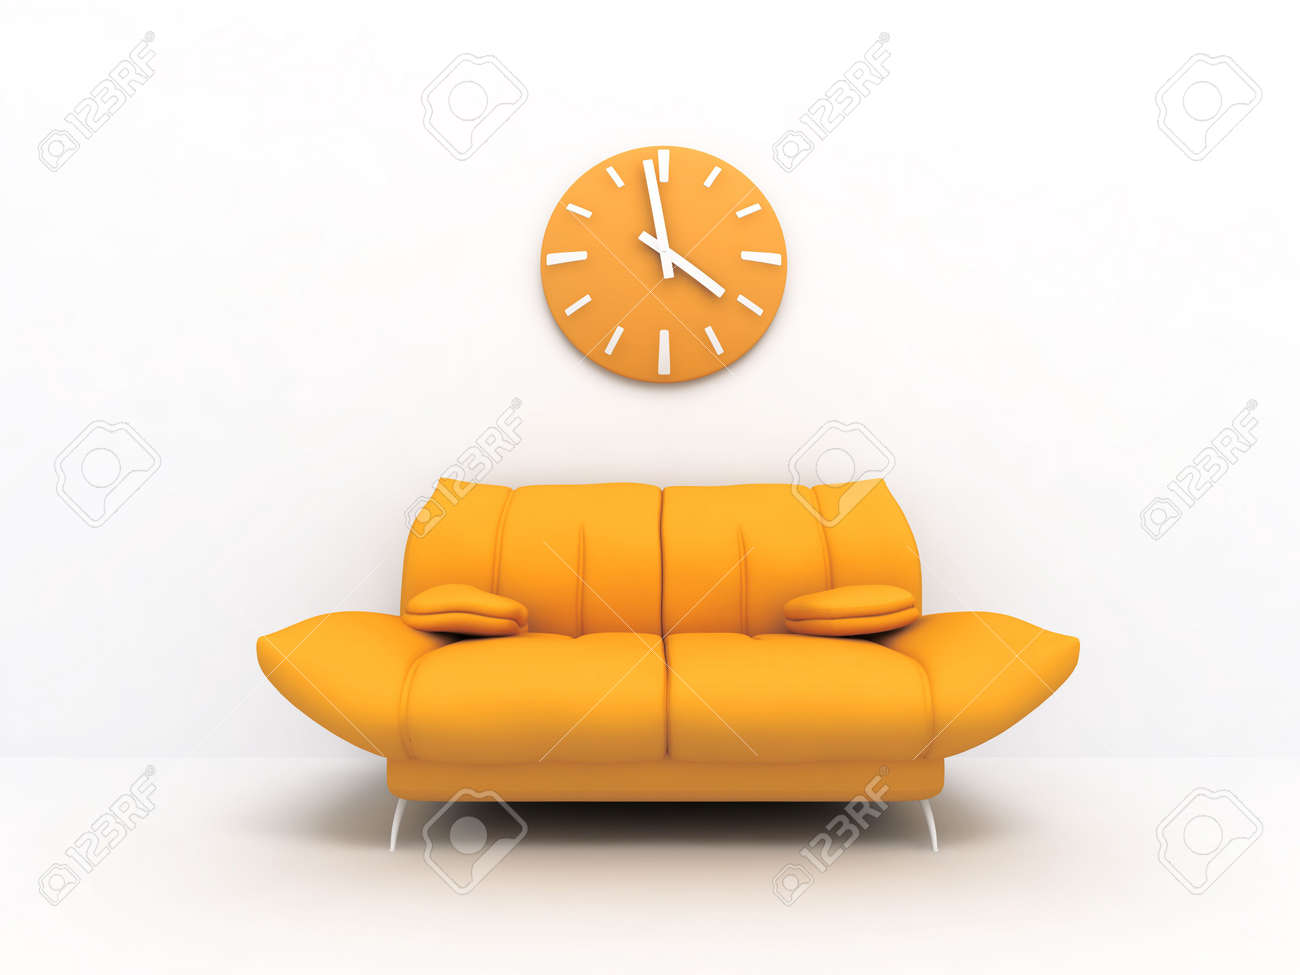 Orange sofa and clock in modern interior of a light living room Stock Photo - 3354480